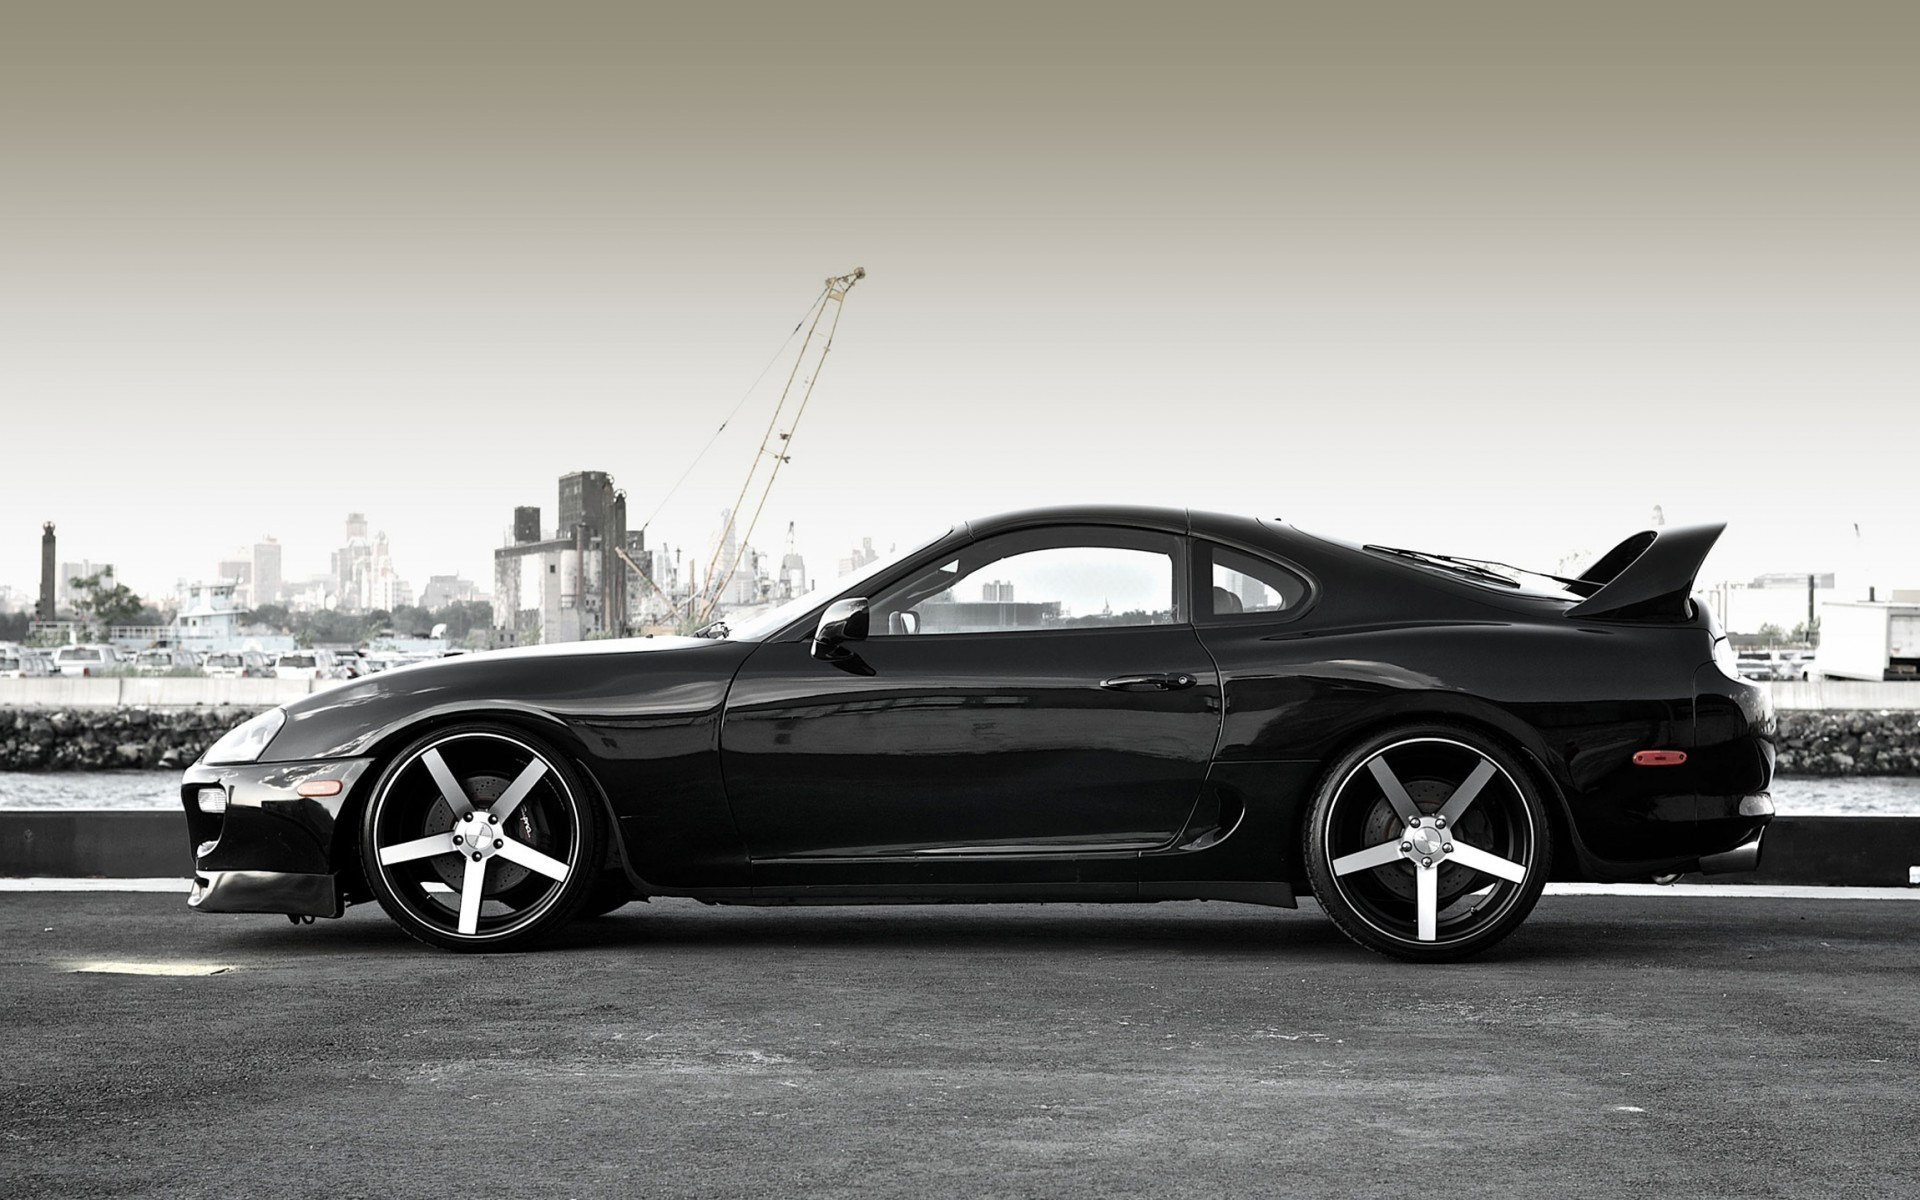 Toyota Supra Black Car